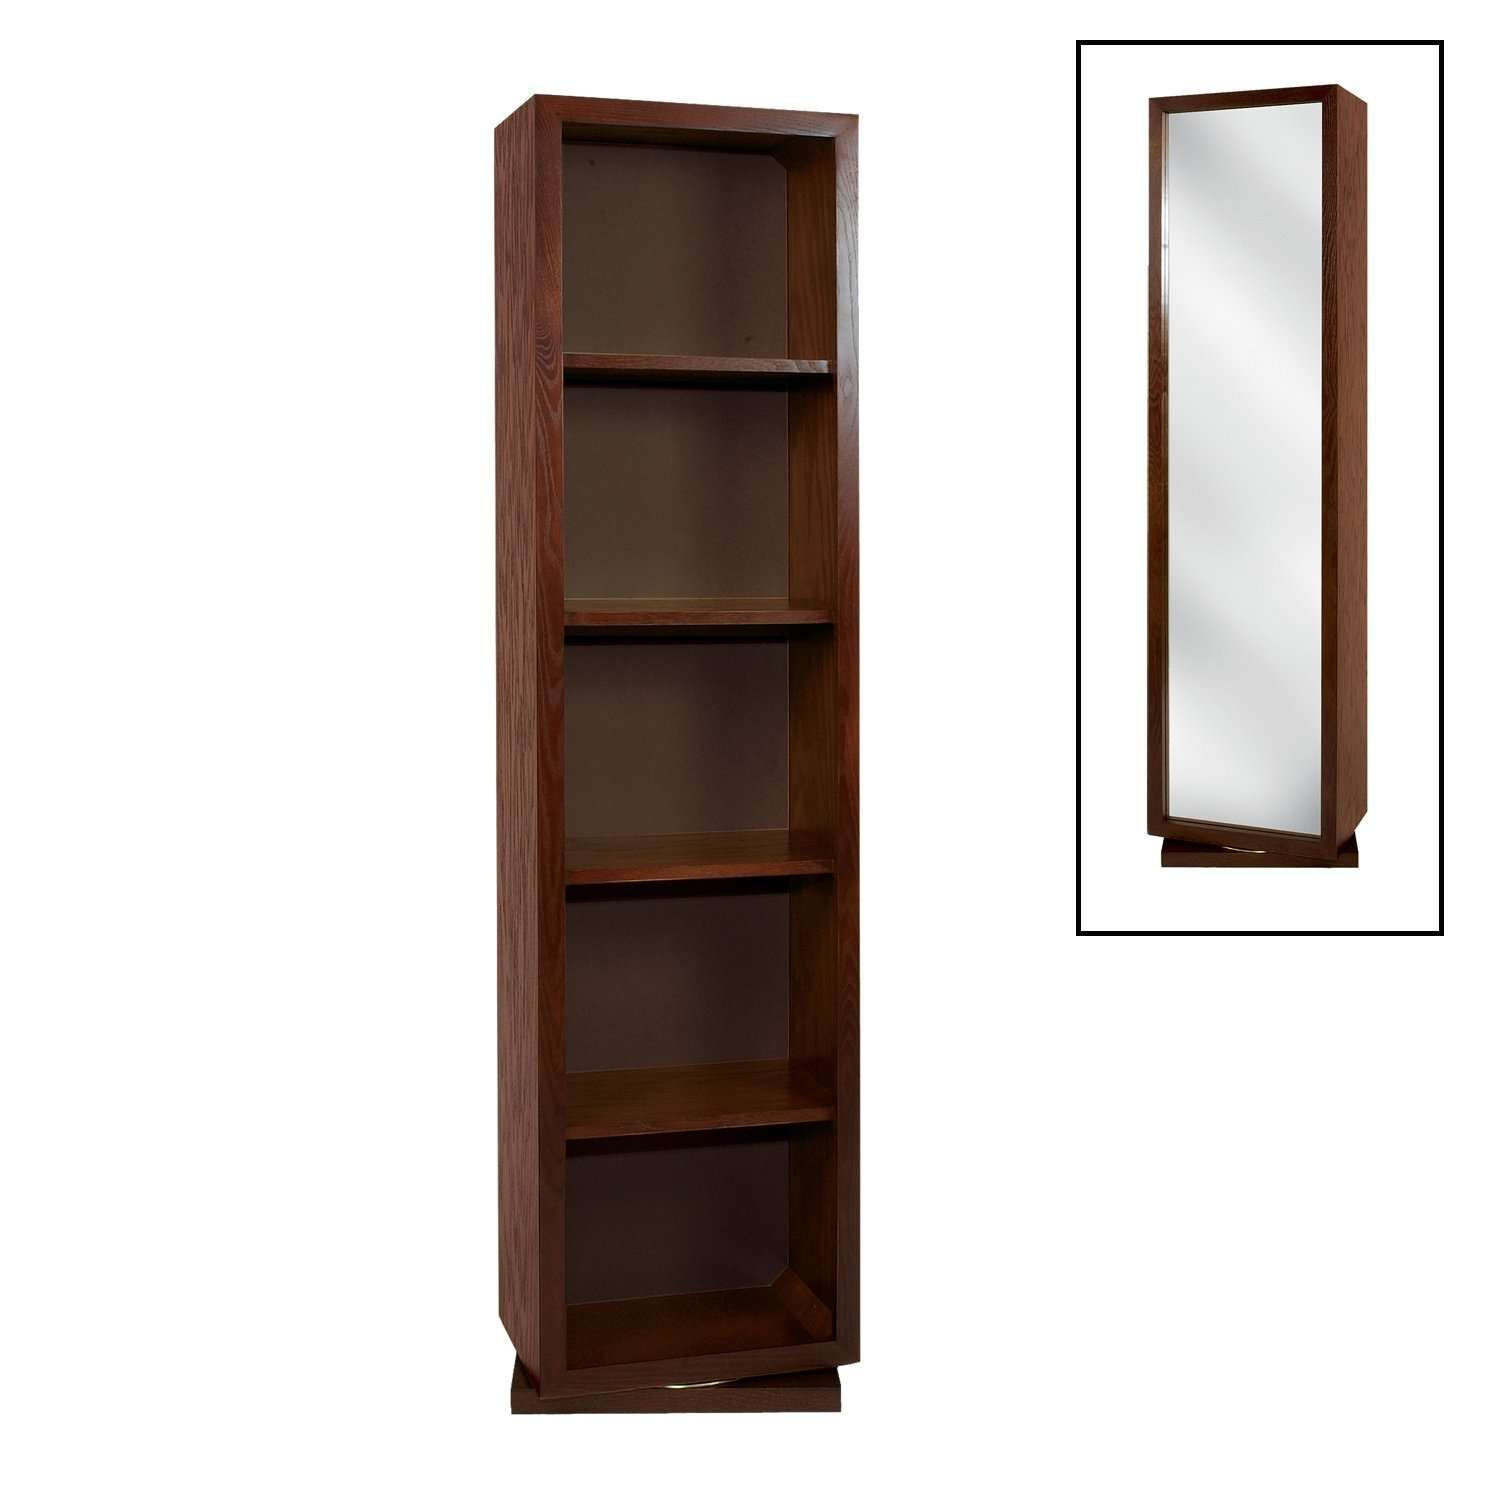 to ceiling contemporary prod poltrona frau veneer swivel mdf wood bookcases floor product bookcase